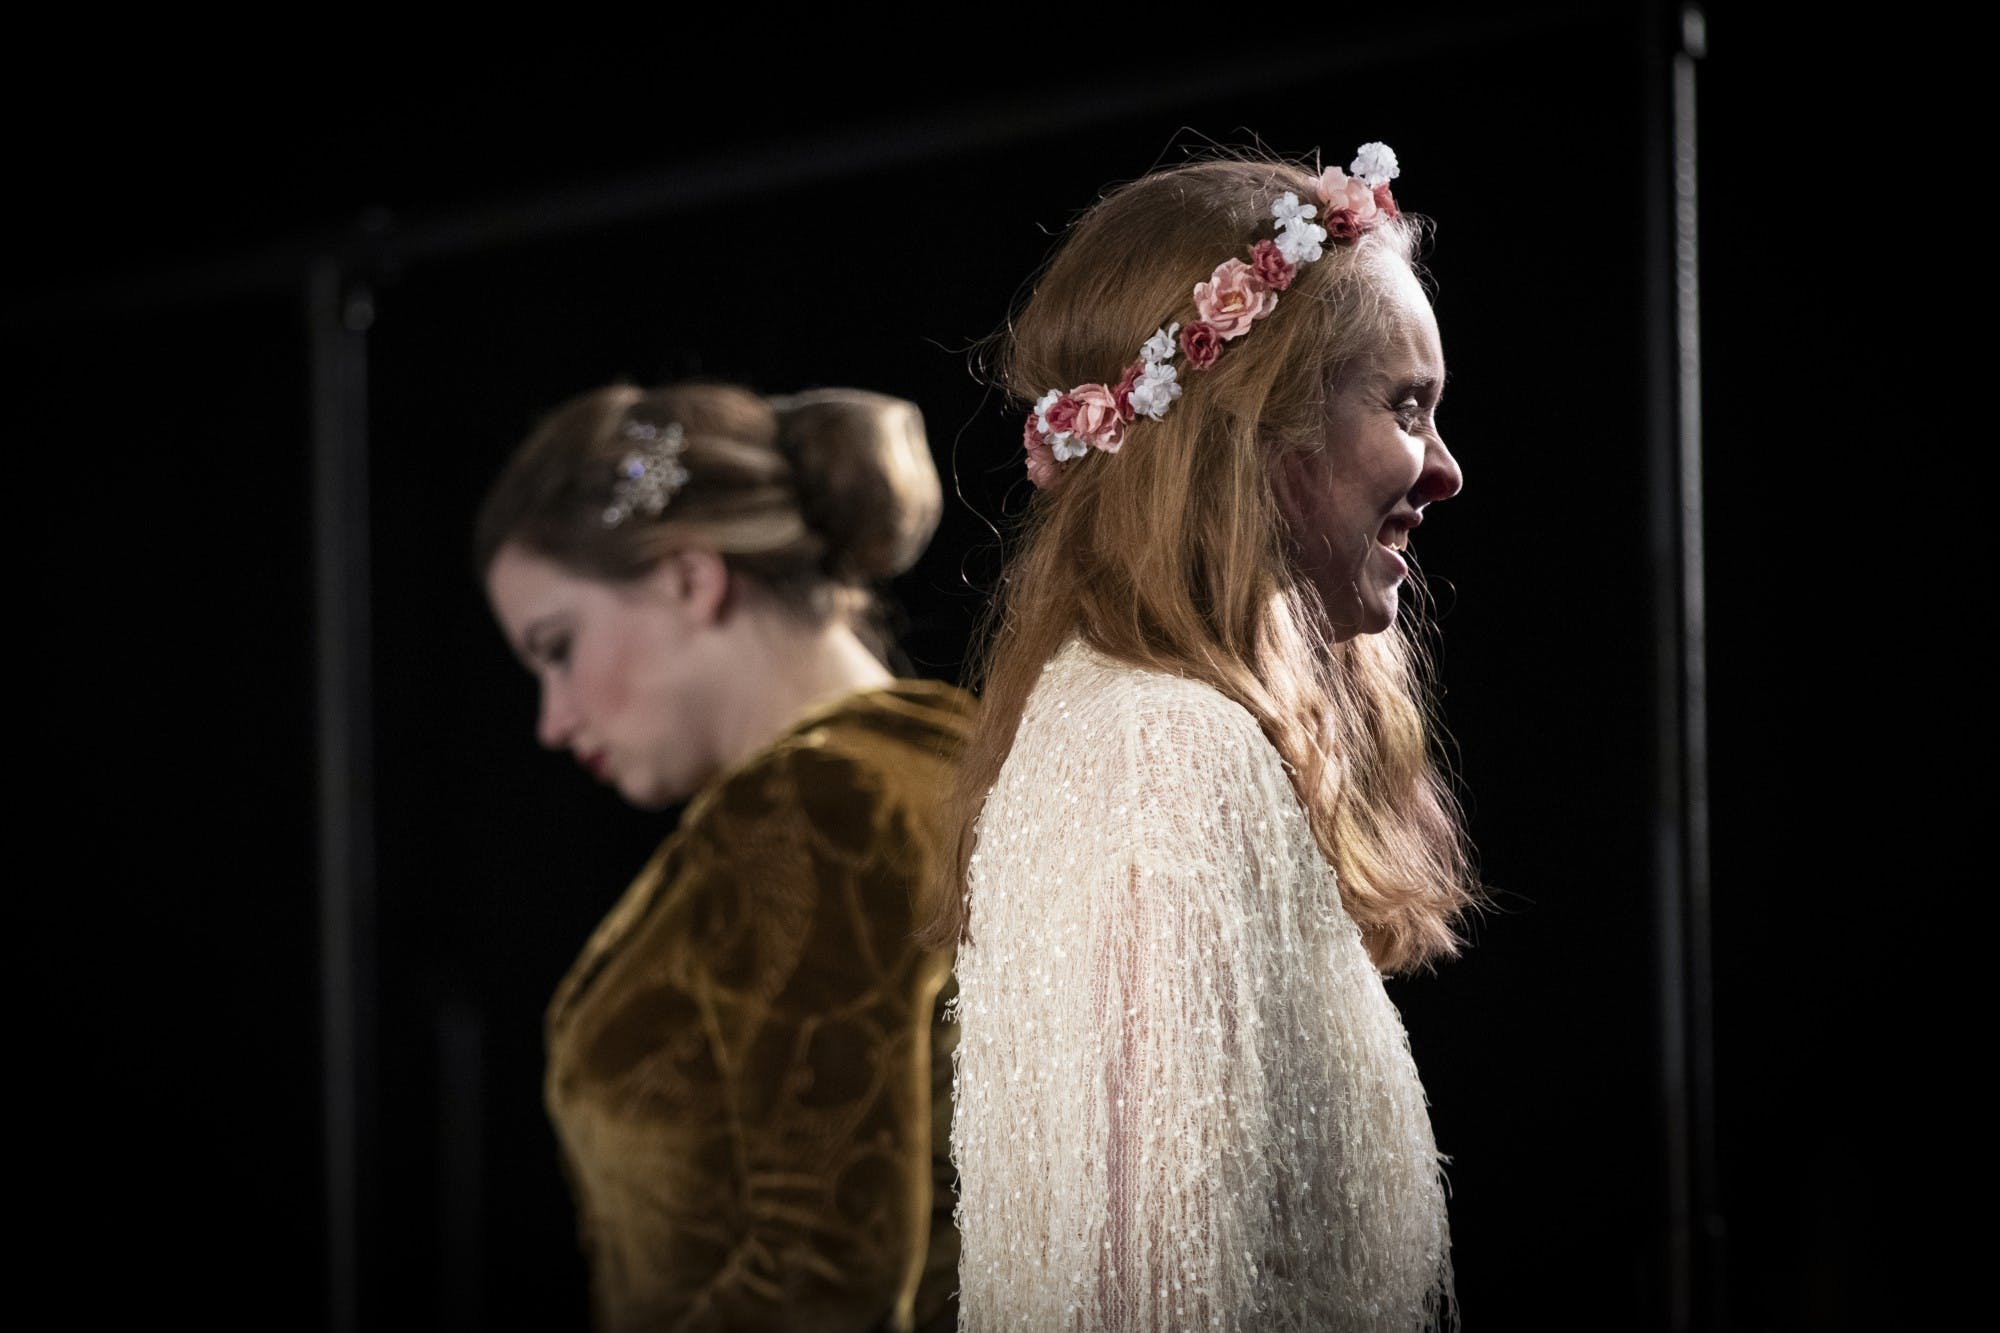 Actress Isabelle Gardo, left, bows her head during a tense scene with actress Anna Doyle on Dec. 3 in Ruth N. Halls Theatre. During the 1600s, it was common for men to play all the roles in performances, even those even those that were originally cast for females.